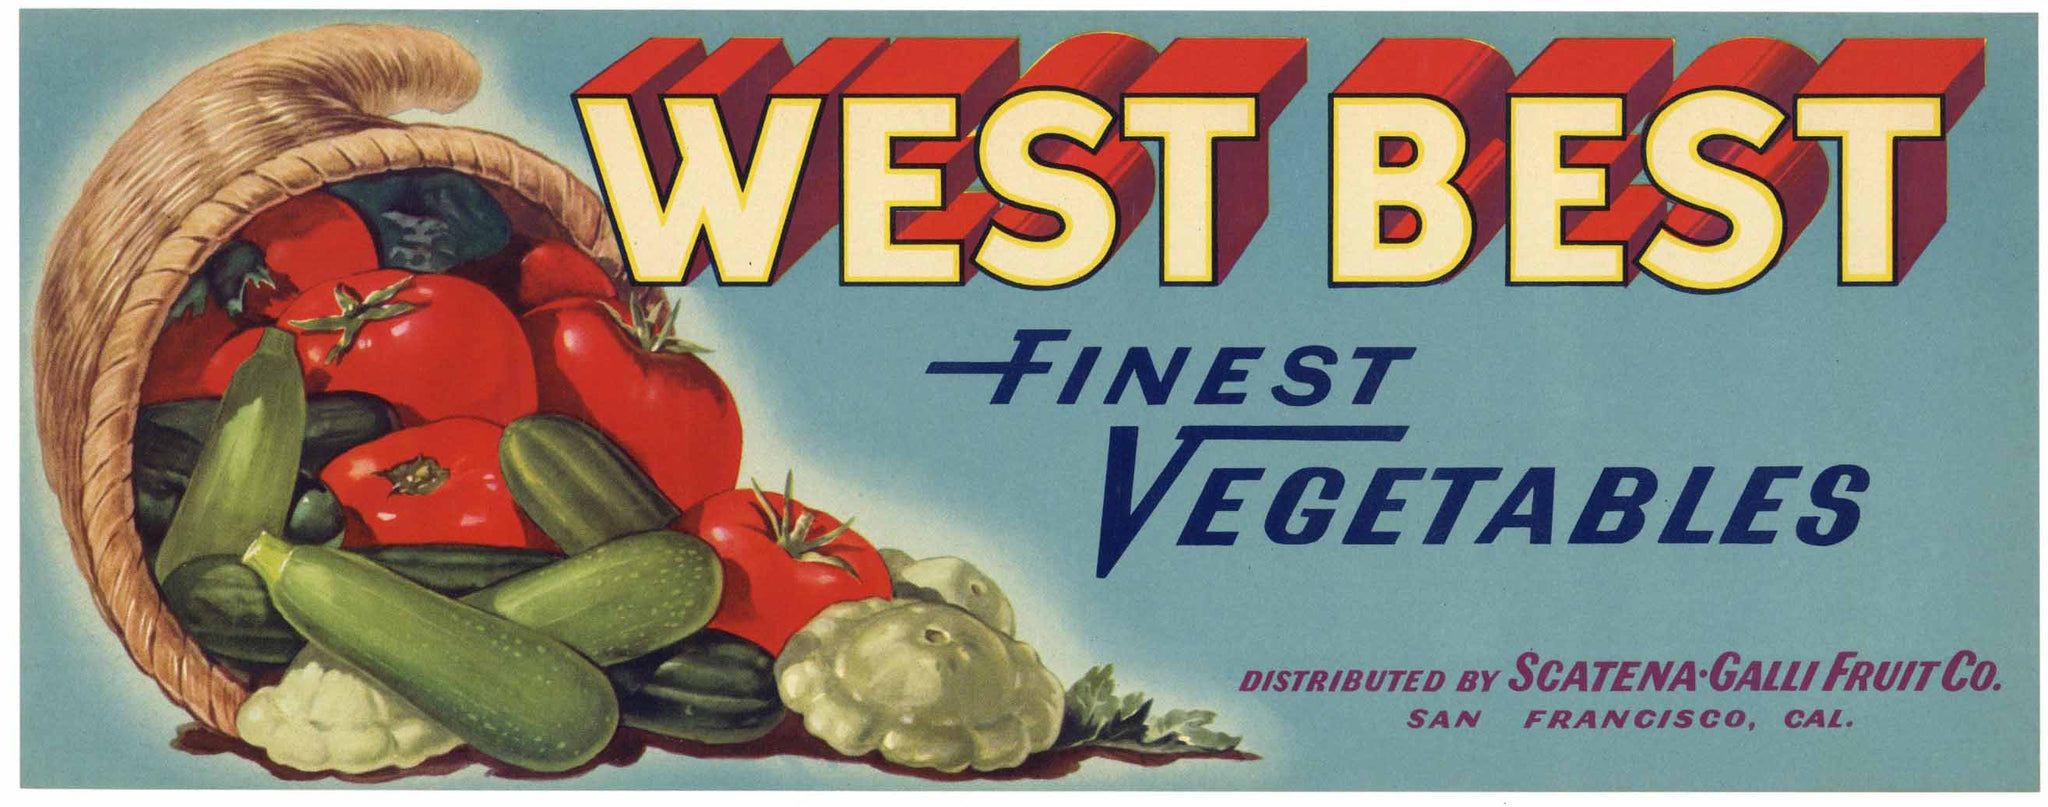 West Best Brand Vintage Vegetable Crate Label